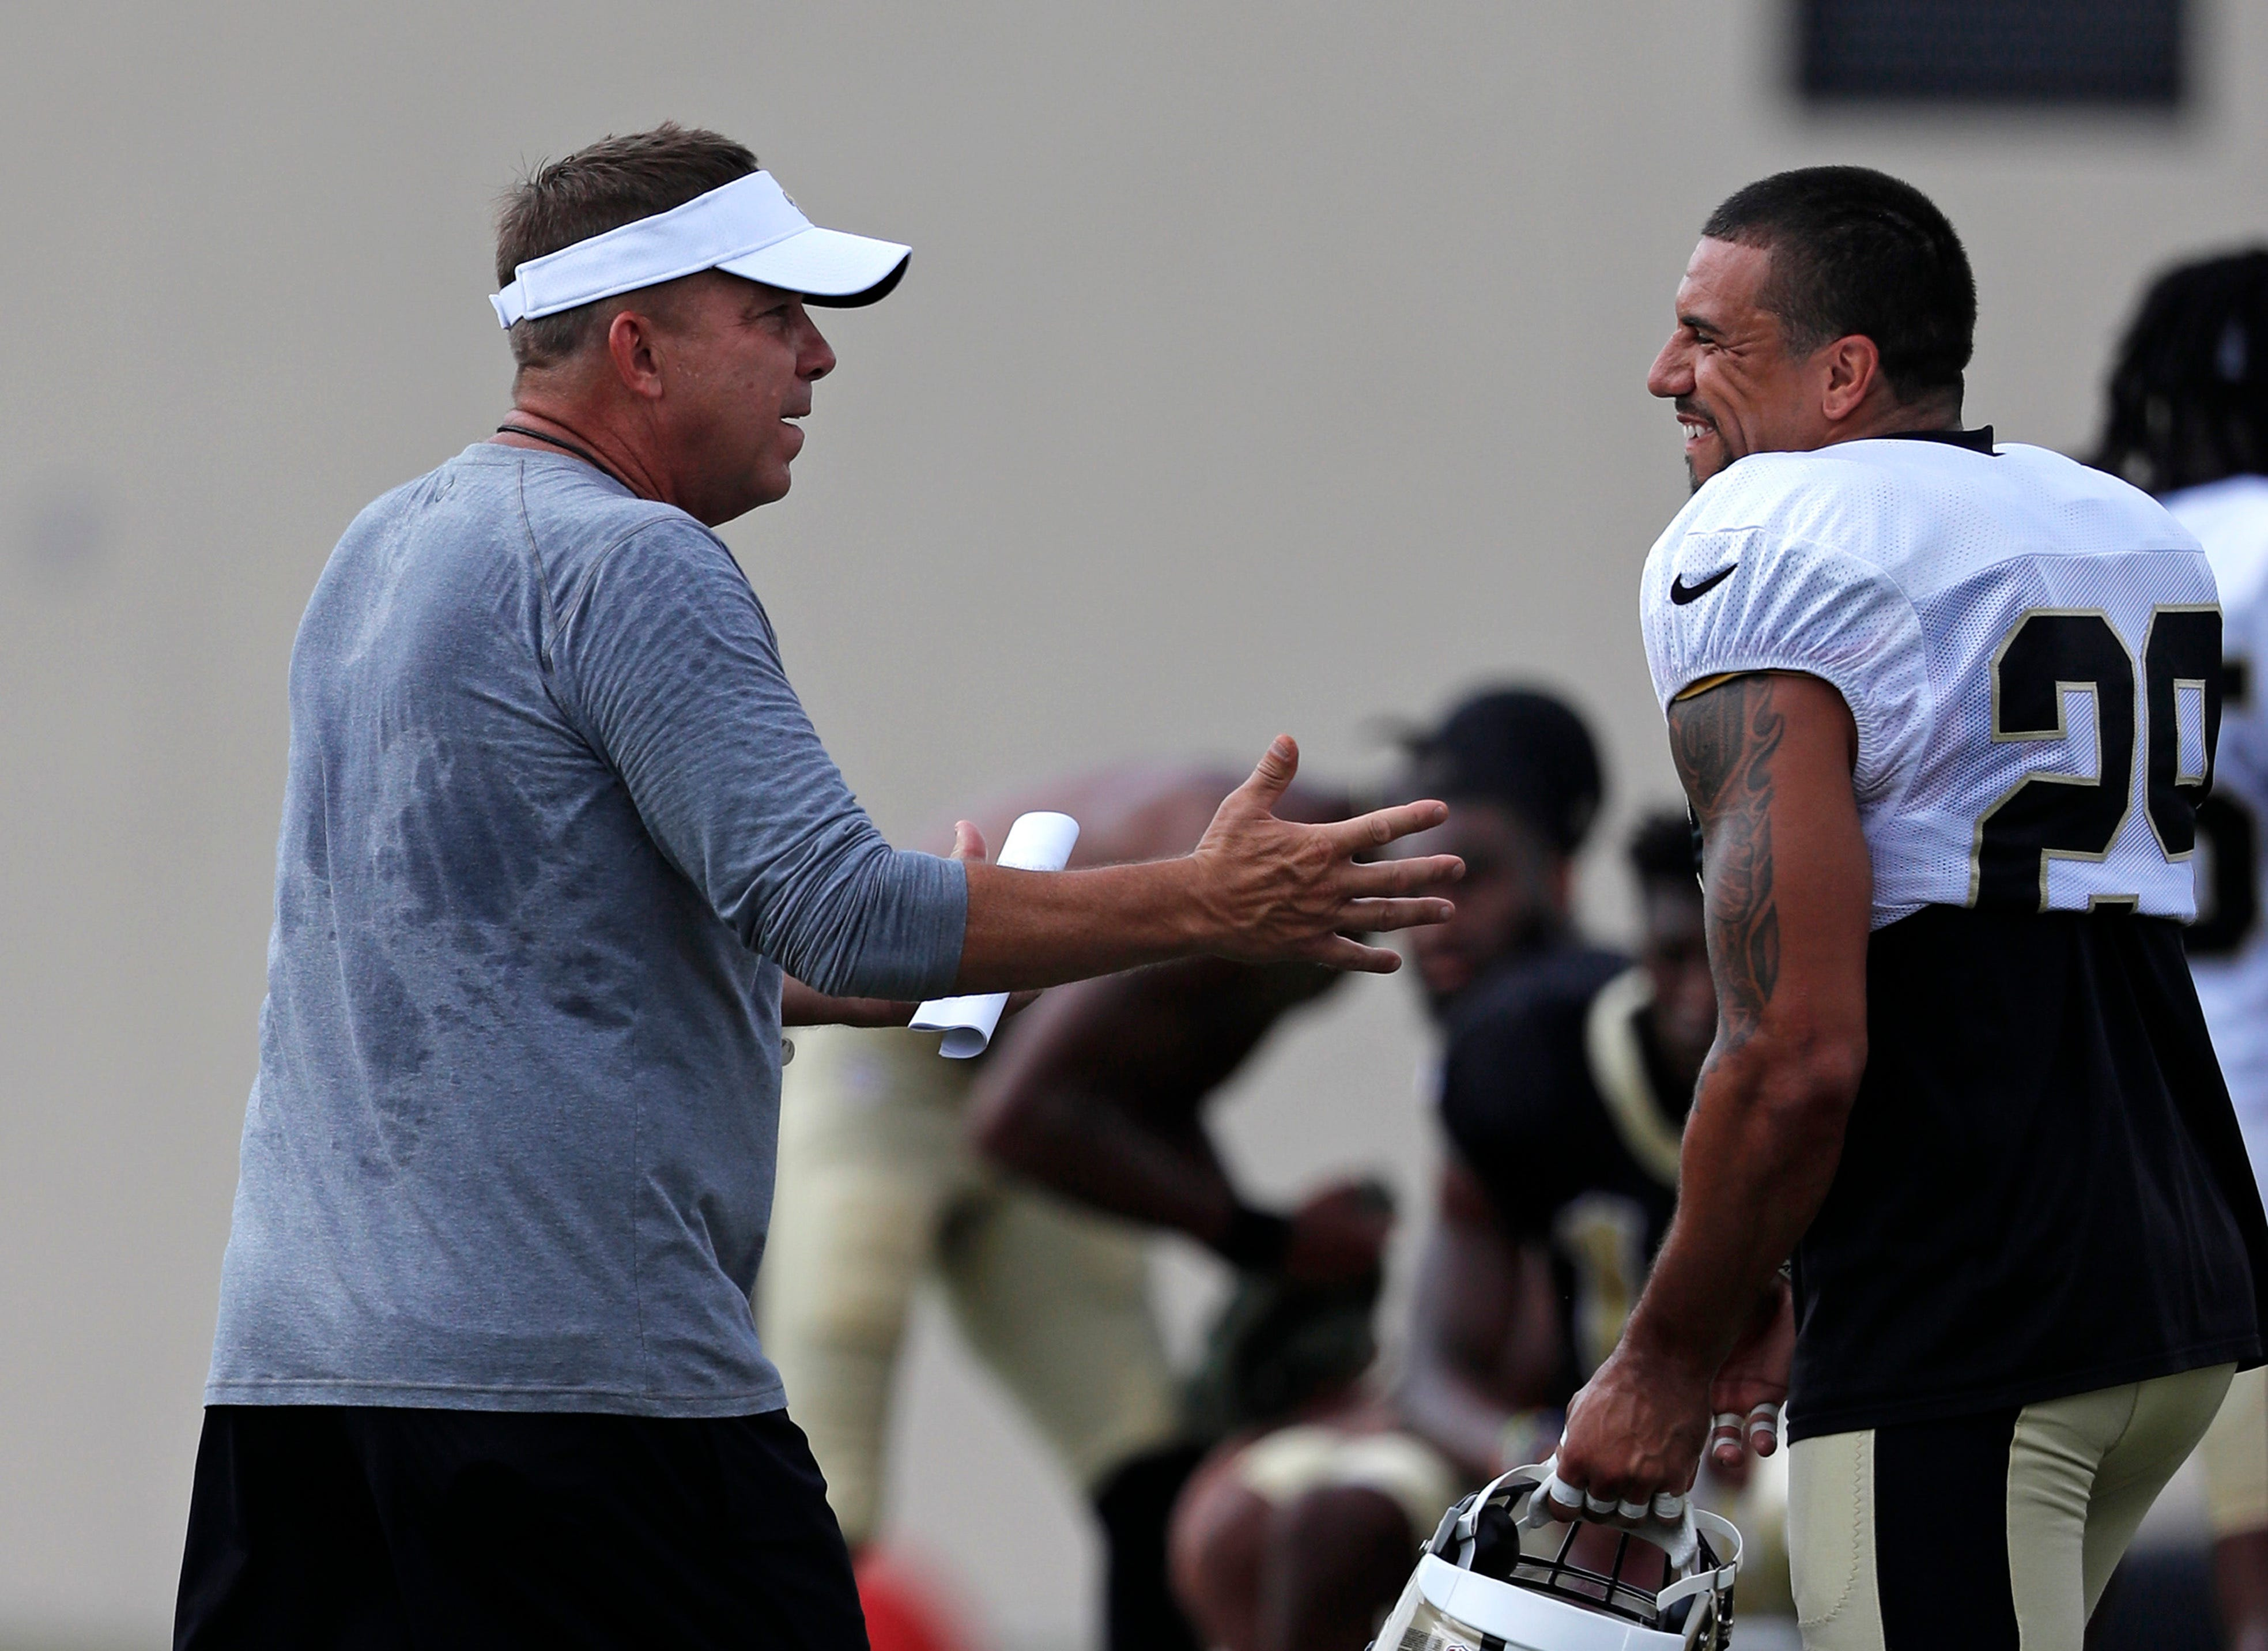 Saints bring in Floyd, Tate, activate Hoomanawanui from PUP